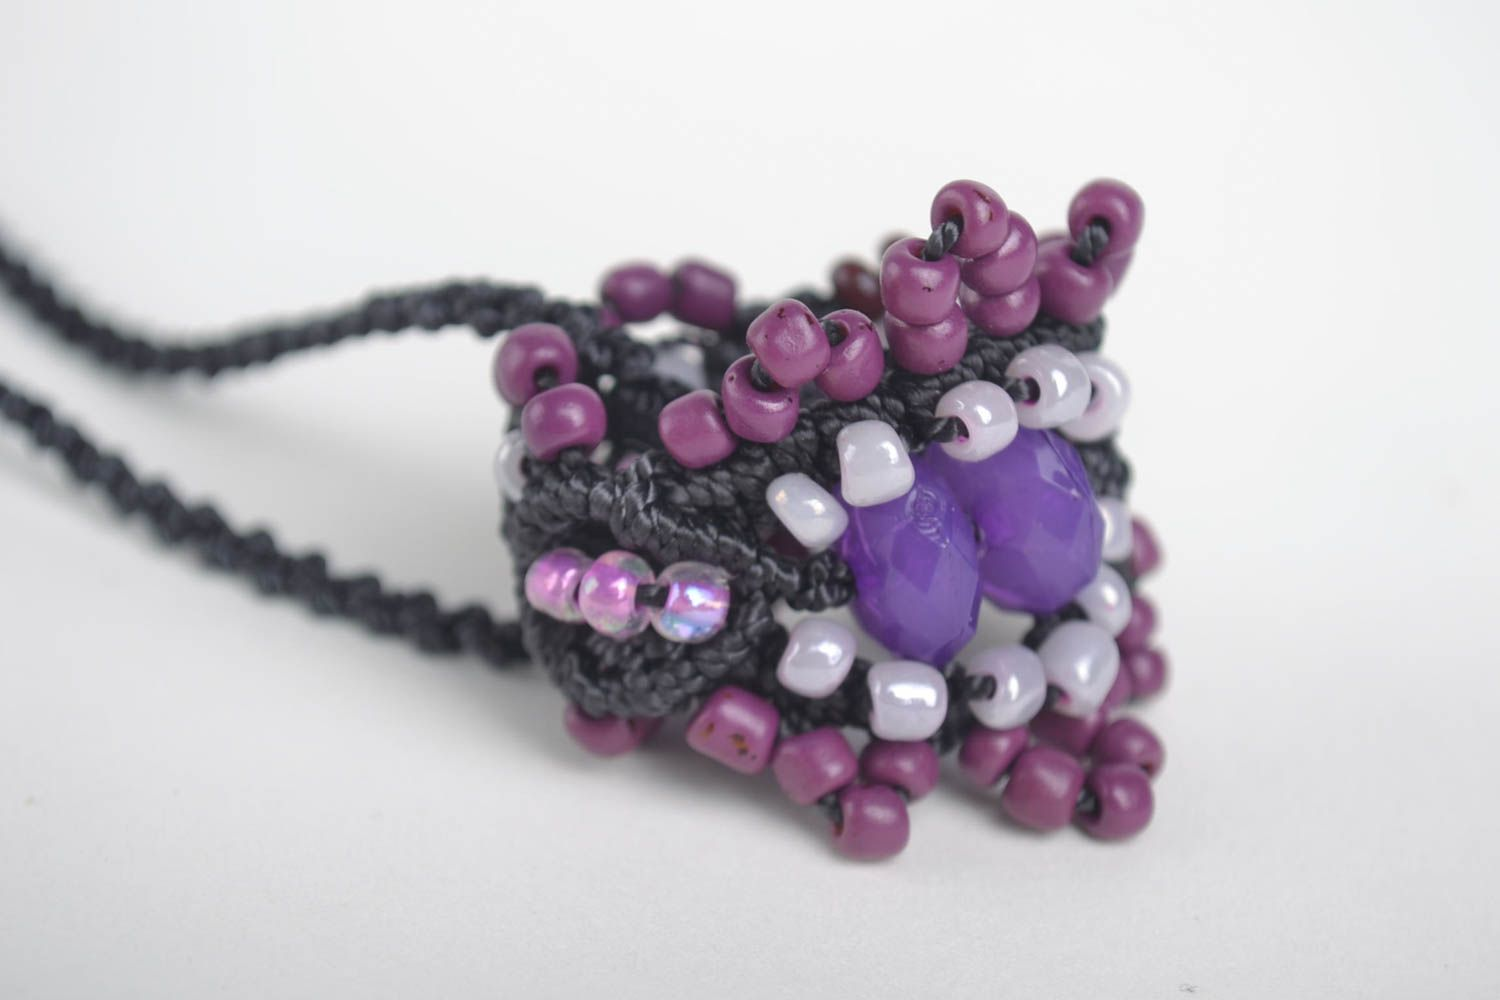 Macrame necklace handmade necklace homemade jewelry women accessories gift ideas photo 2